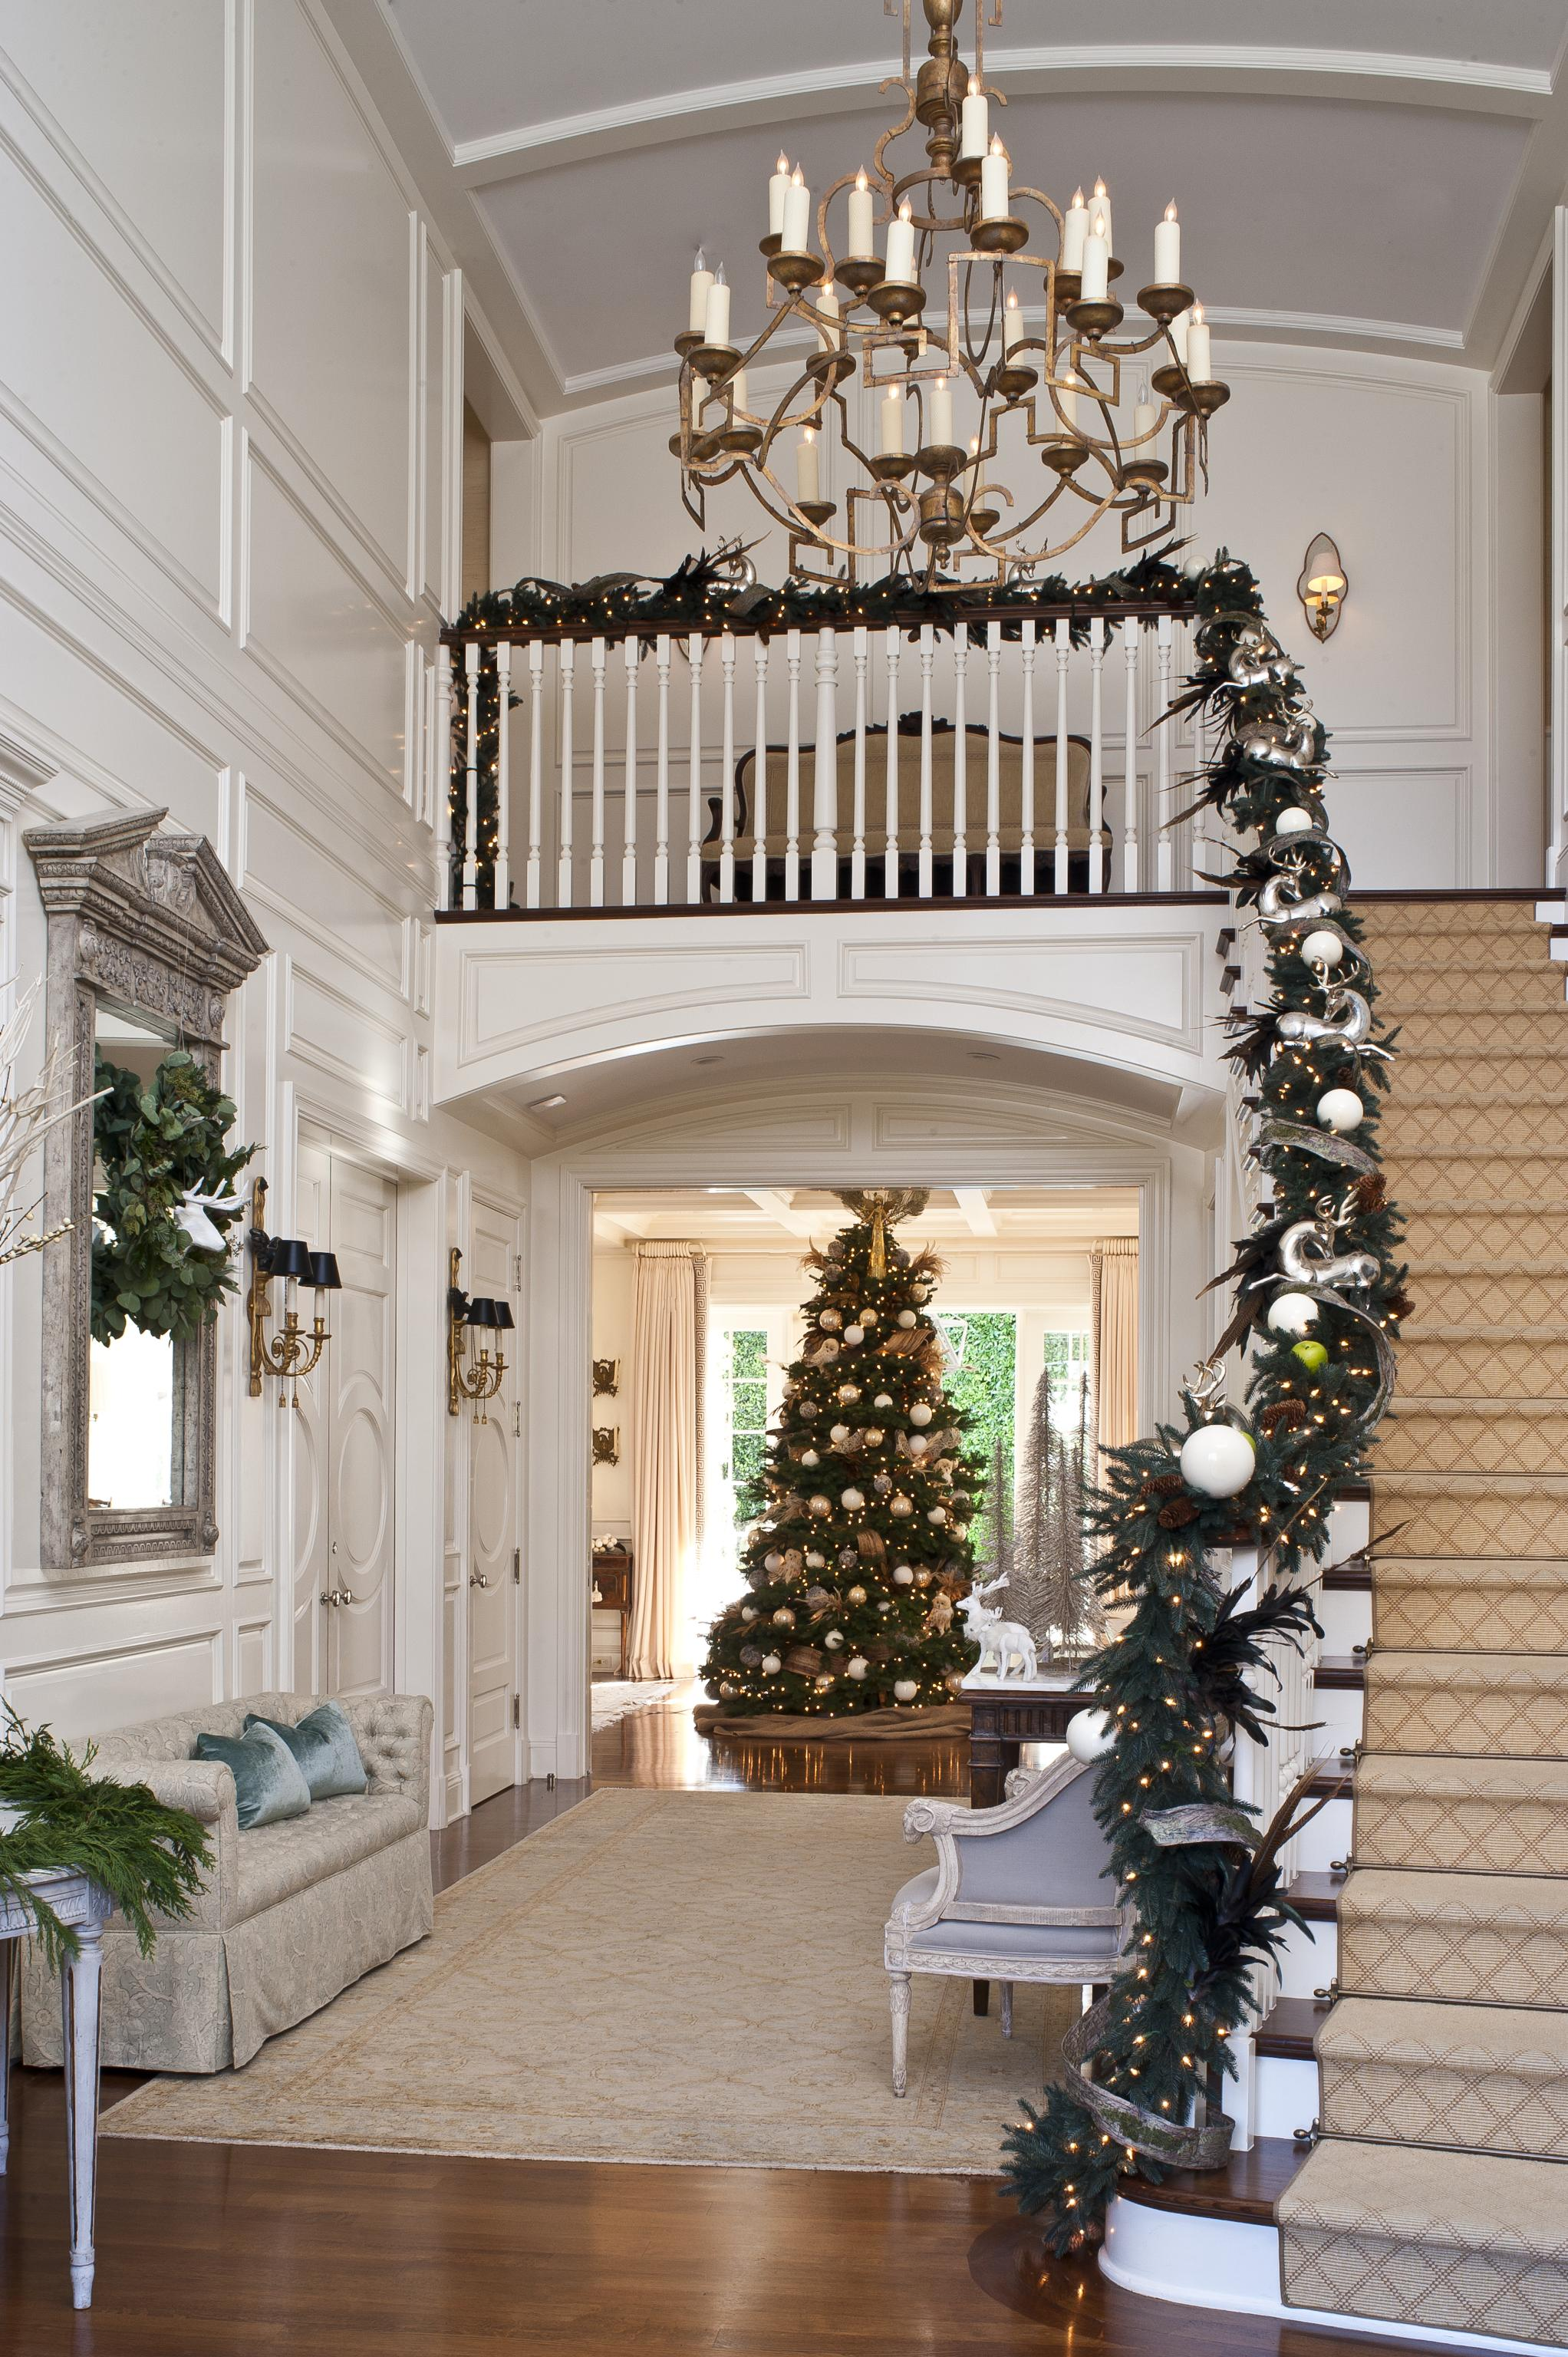 source - Banister Christmas Decorations